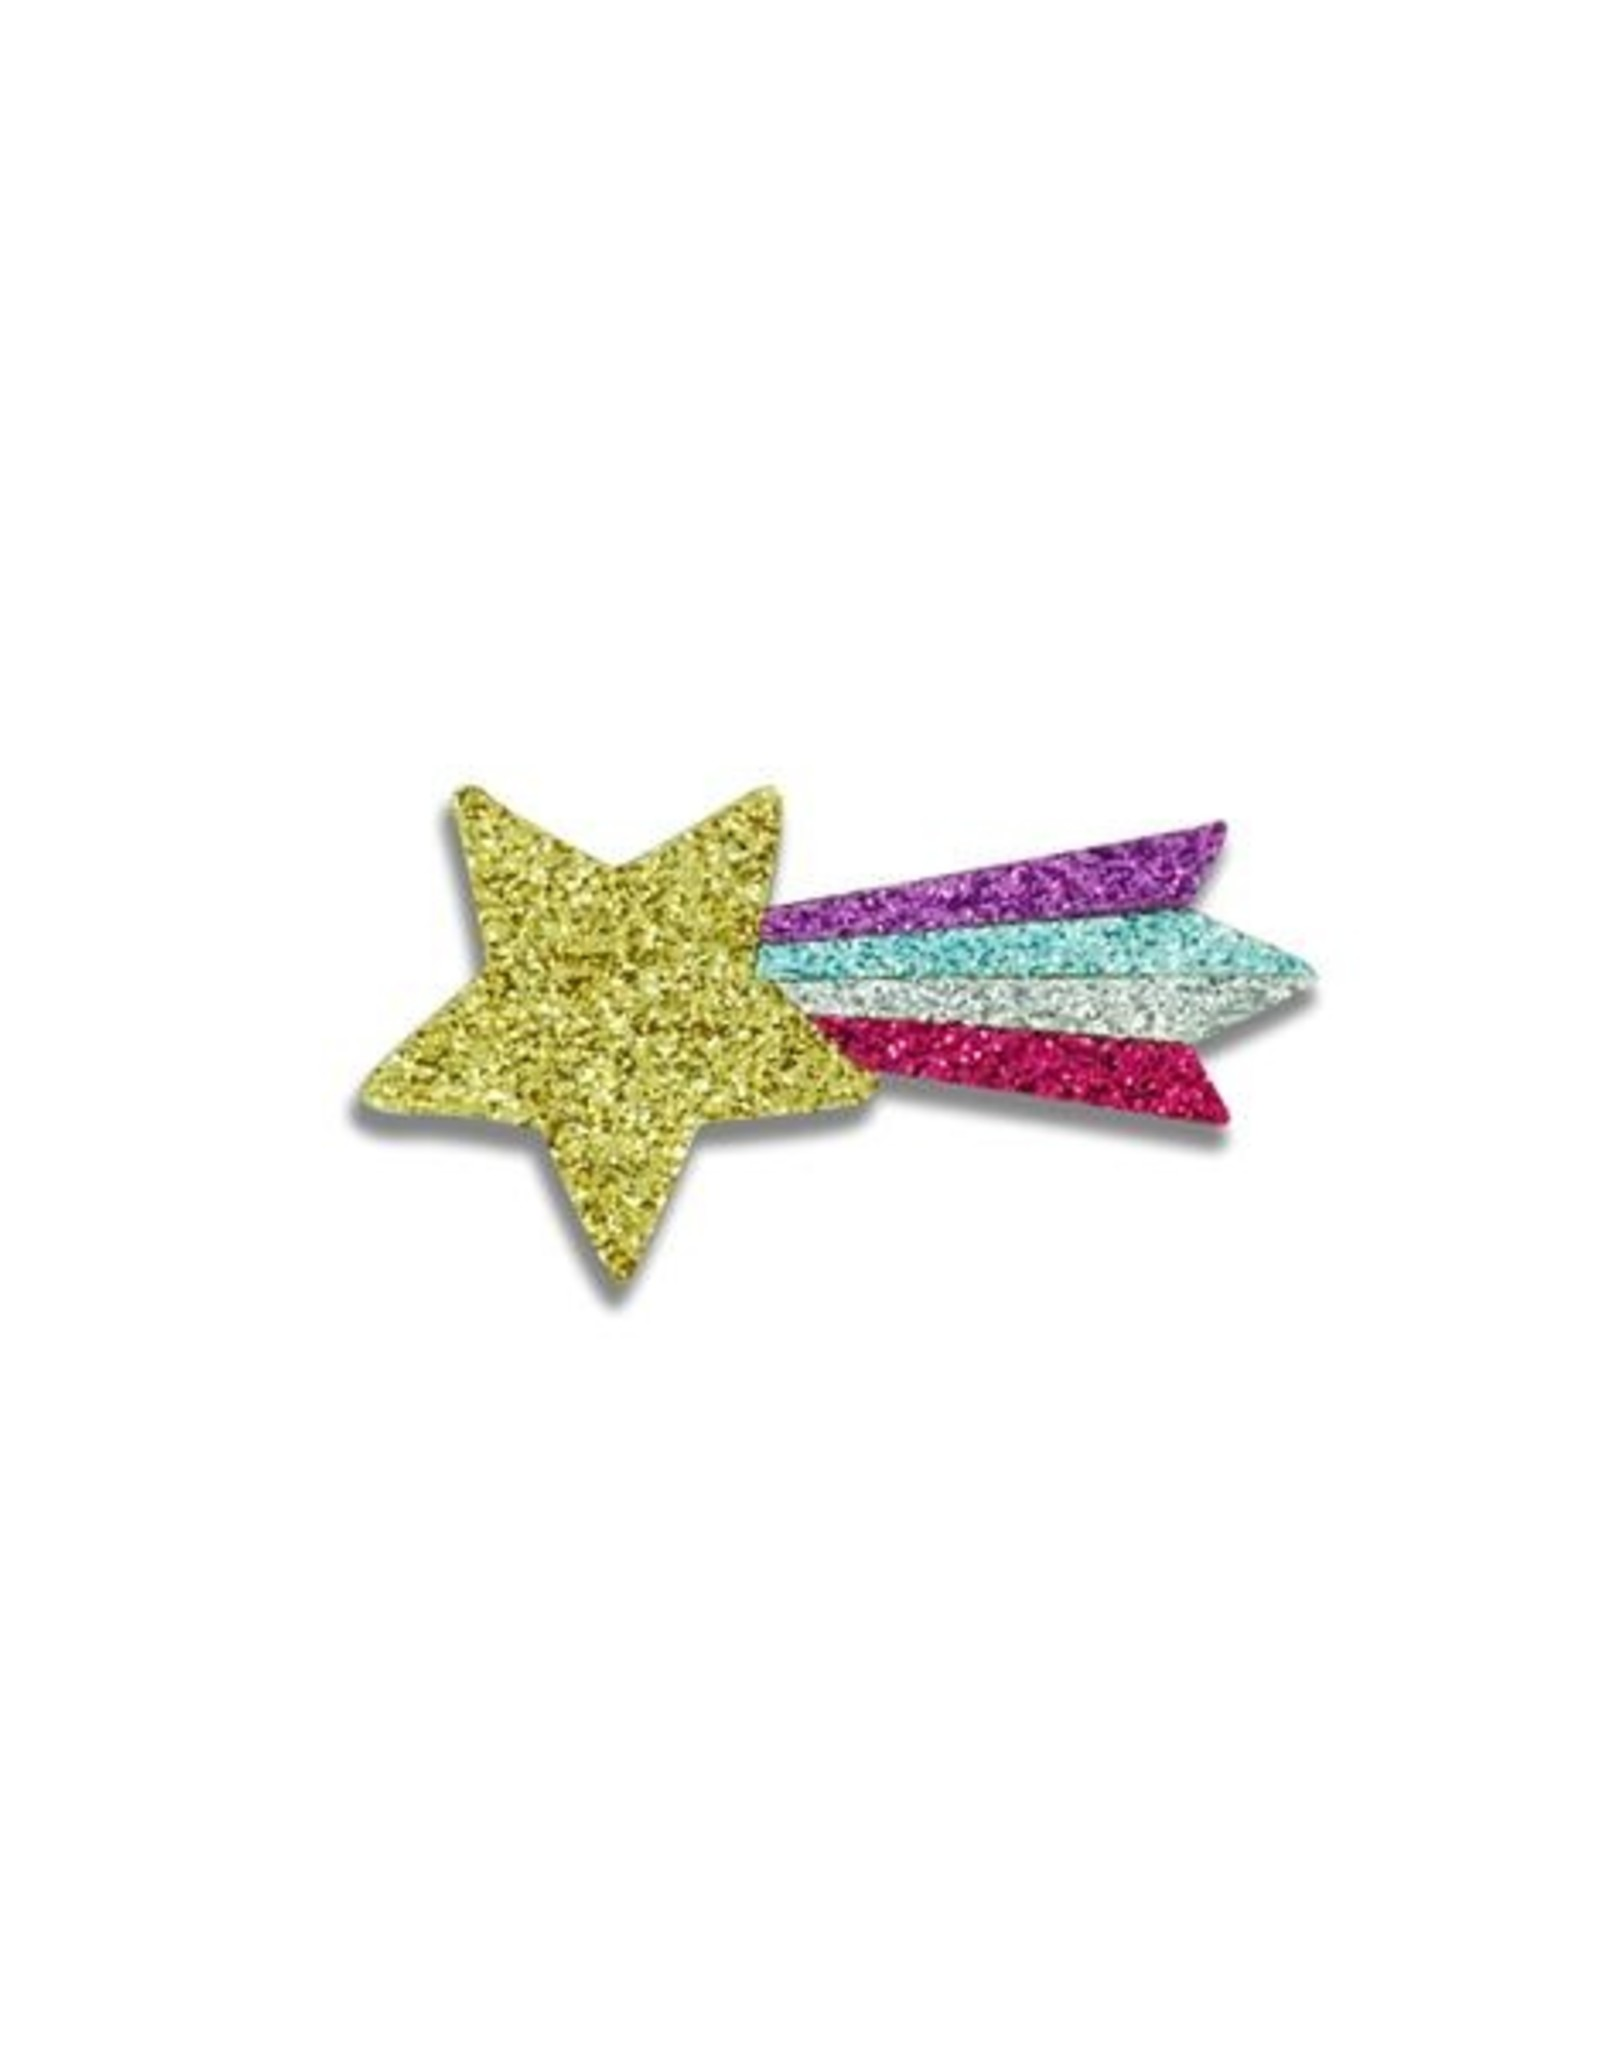 Minista Minista Hair Clip - Shooting Star